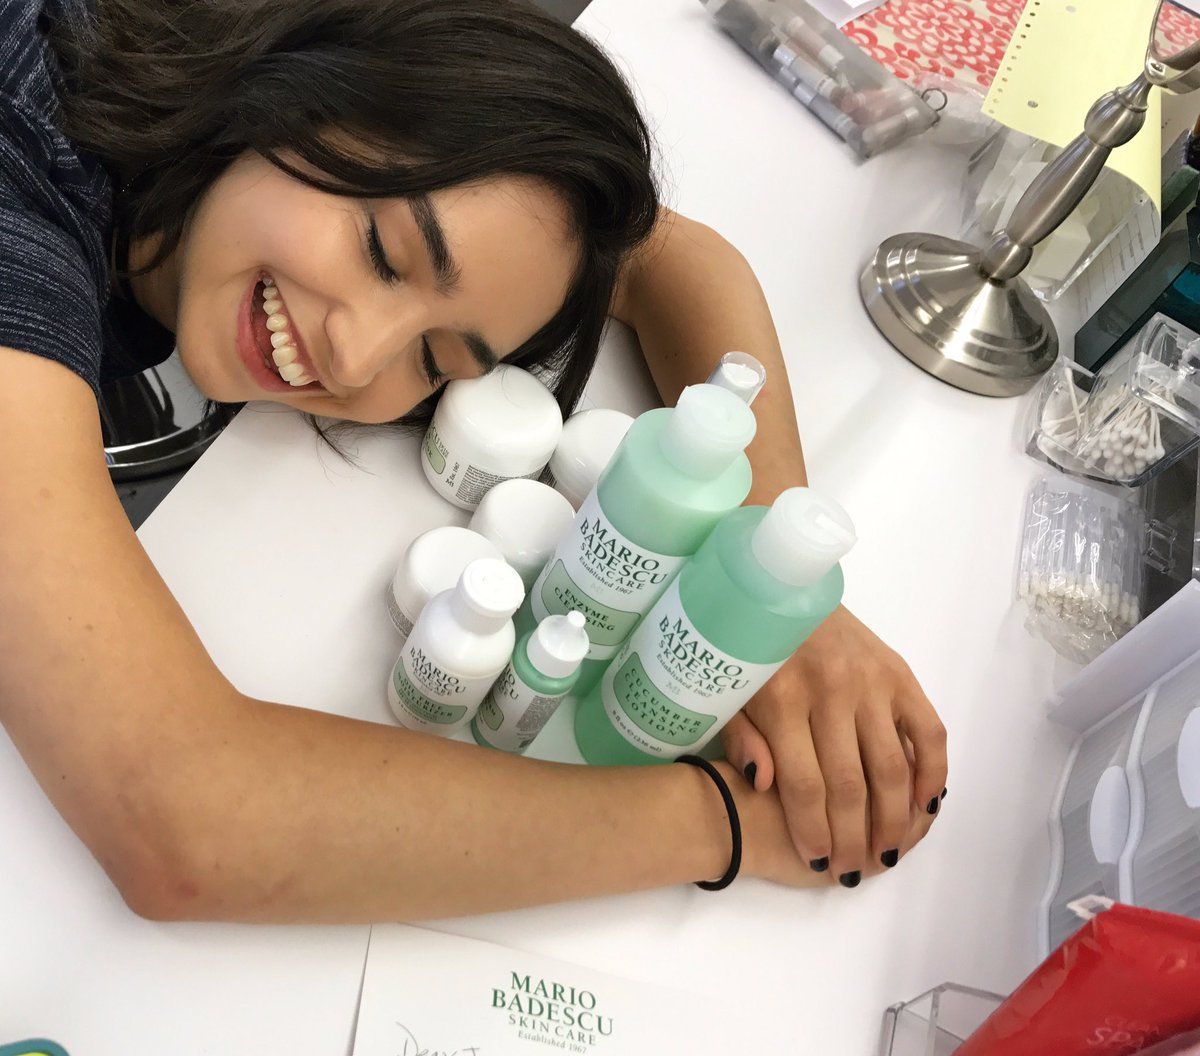 Mario Badescu Facial Spray with Aloe, Herbs and Rosewater is easily one of the most sought after products in the line. Not only is it a favorite of our amazing loyal customers (hi!), but it has also earned space in the skin care collections of our favorite bloggers, YouTube beauty .